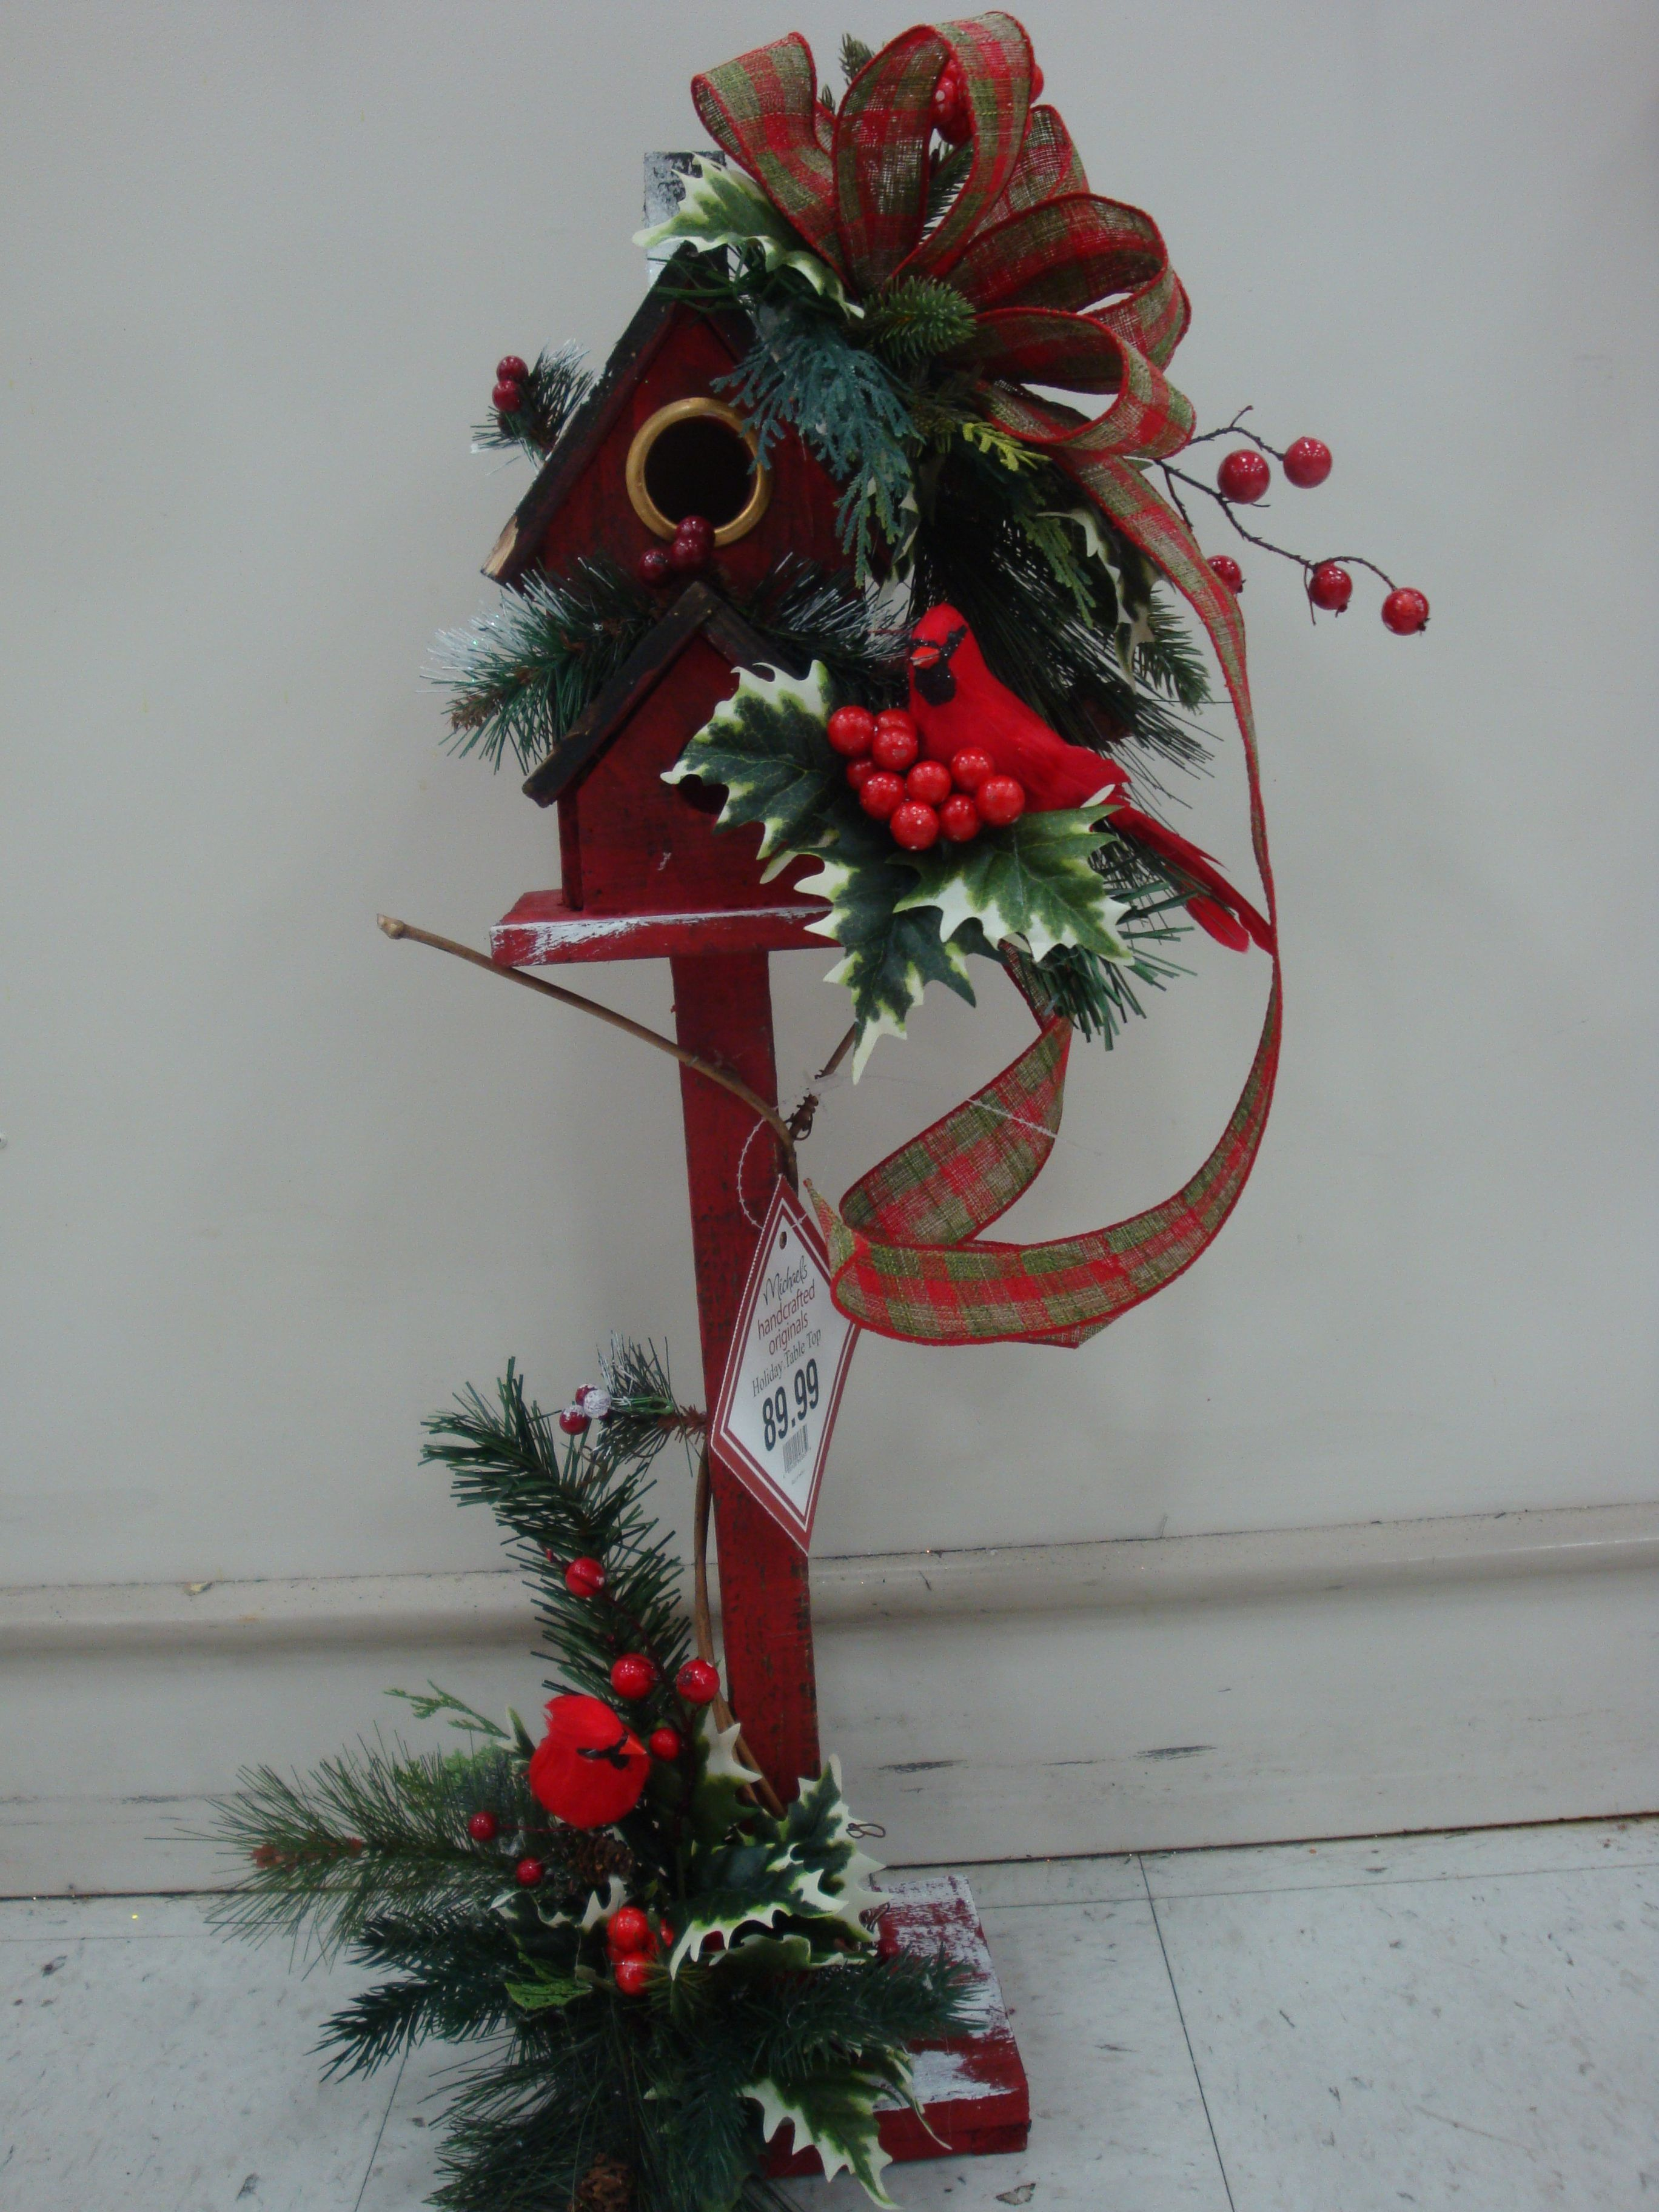 Christmas Birdhouse Designed By Christine Crowley For Michaels In Willowbrook,